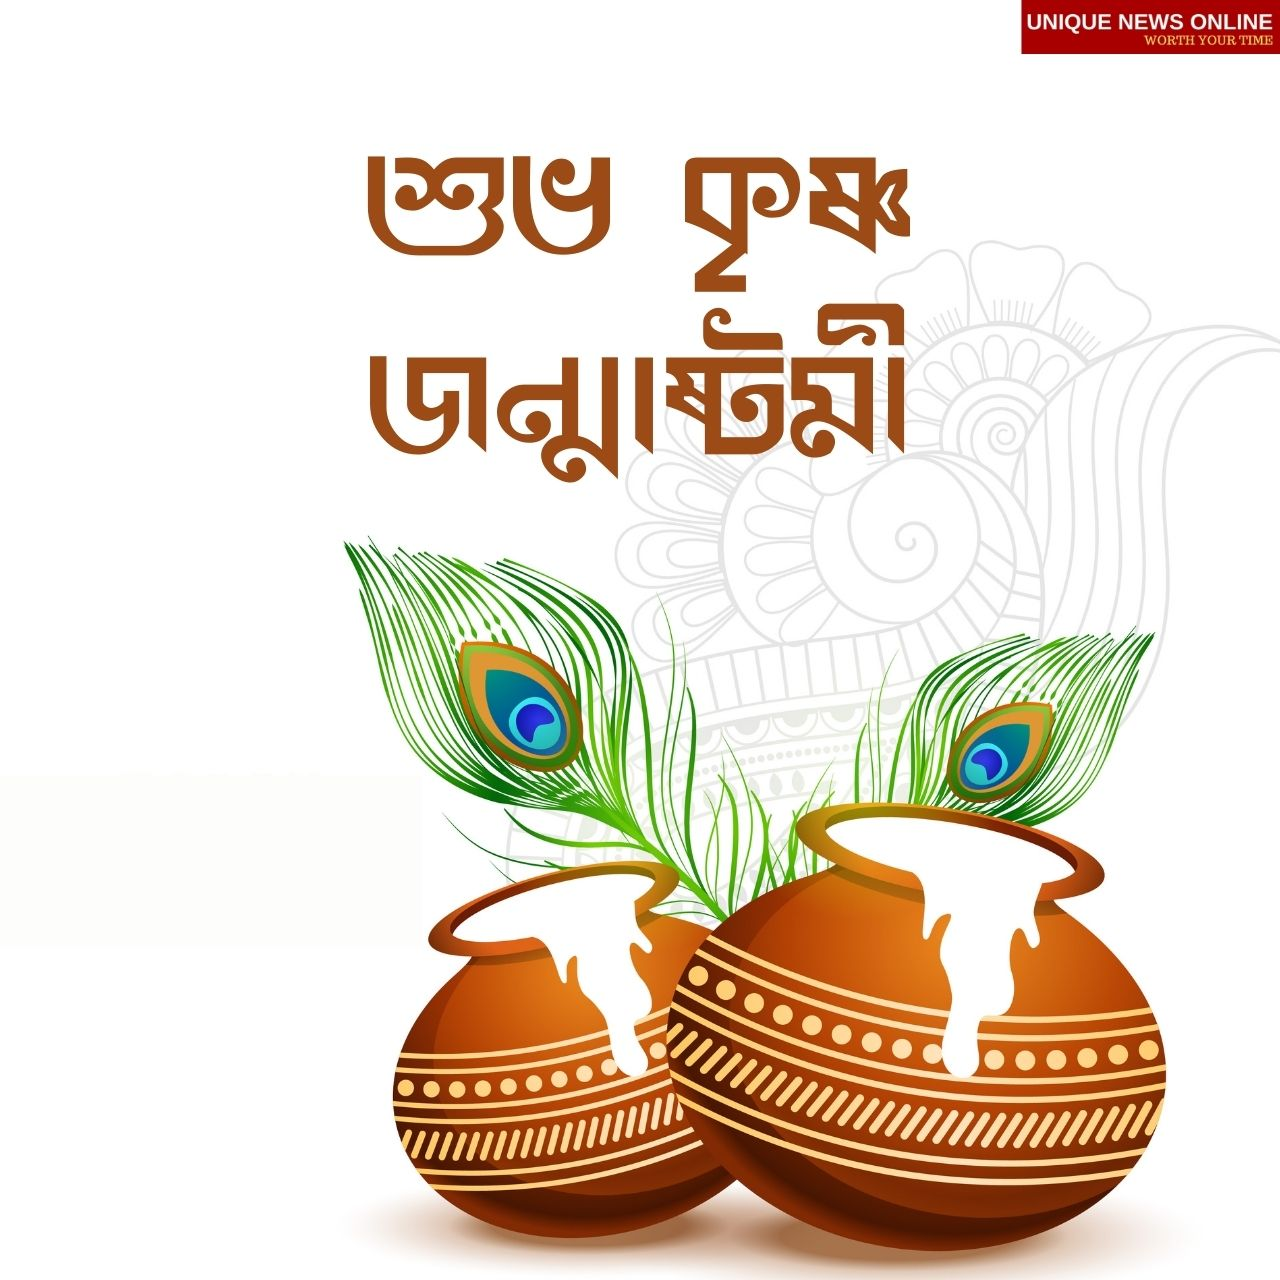 Happy Krishna Janmashtami 2021 Bengali Wishes, Messages, Quotes, HD Images, Messages, Greetings, Facebook, and WhatsApp Status to share